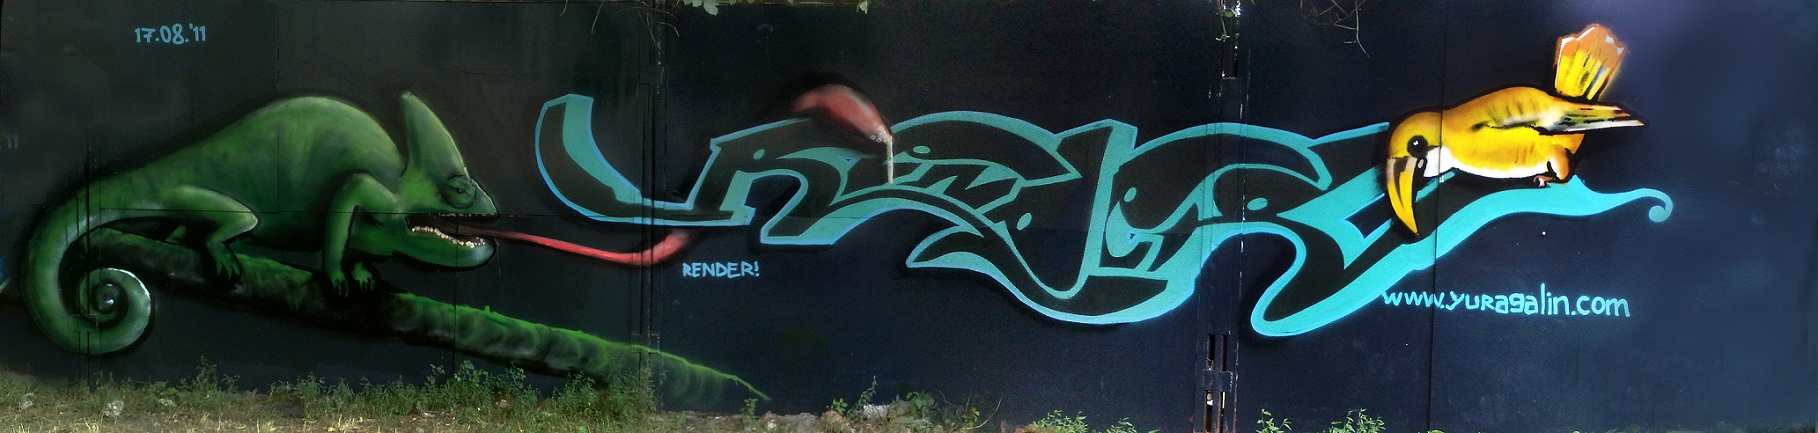 Render Graffiti - Chameleon